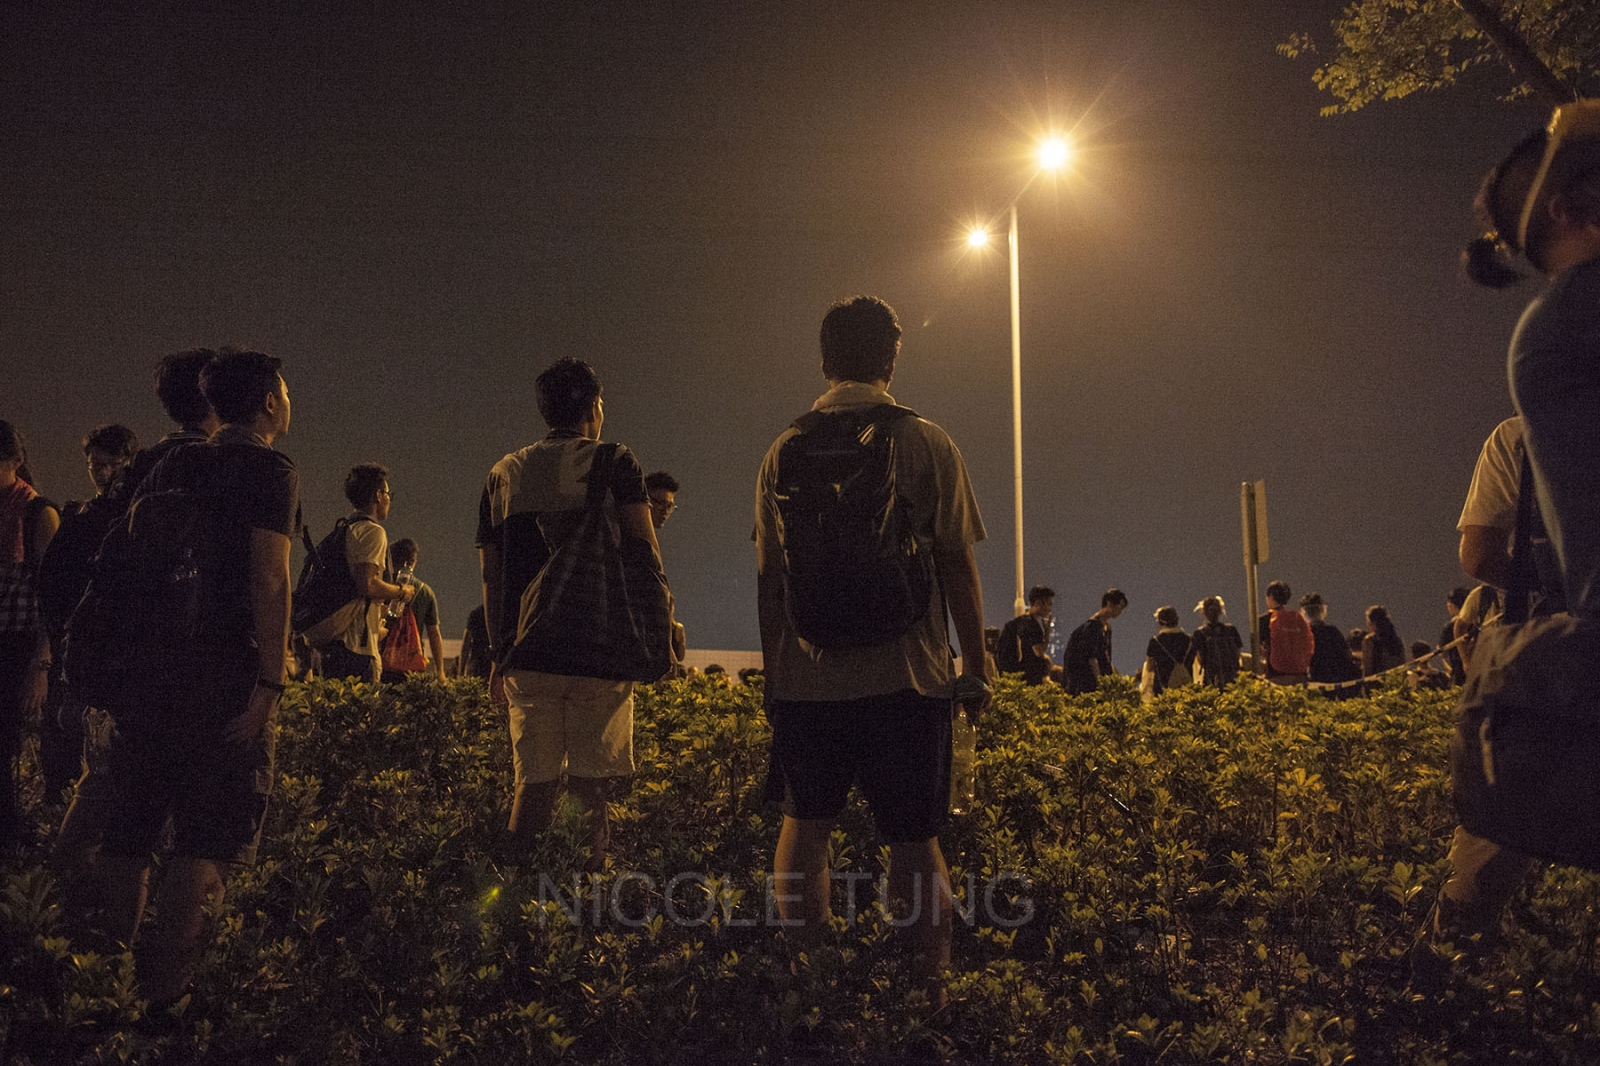 Protestors gather near Lung Wo Road, outside government offices, where several of the demonstrators caused a commotion by attempting to occupy another section of the road, which would have completely halted all traffic and disrupted a main artery connecting east and west Hong Kong, October 3, 2014.